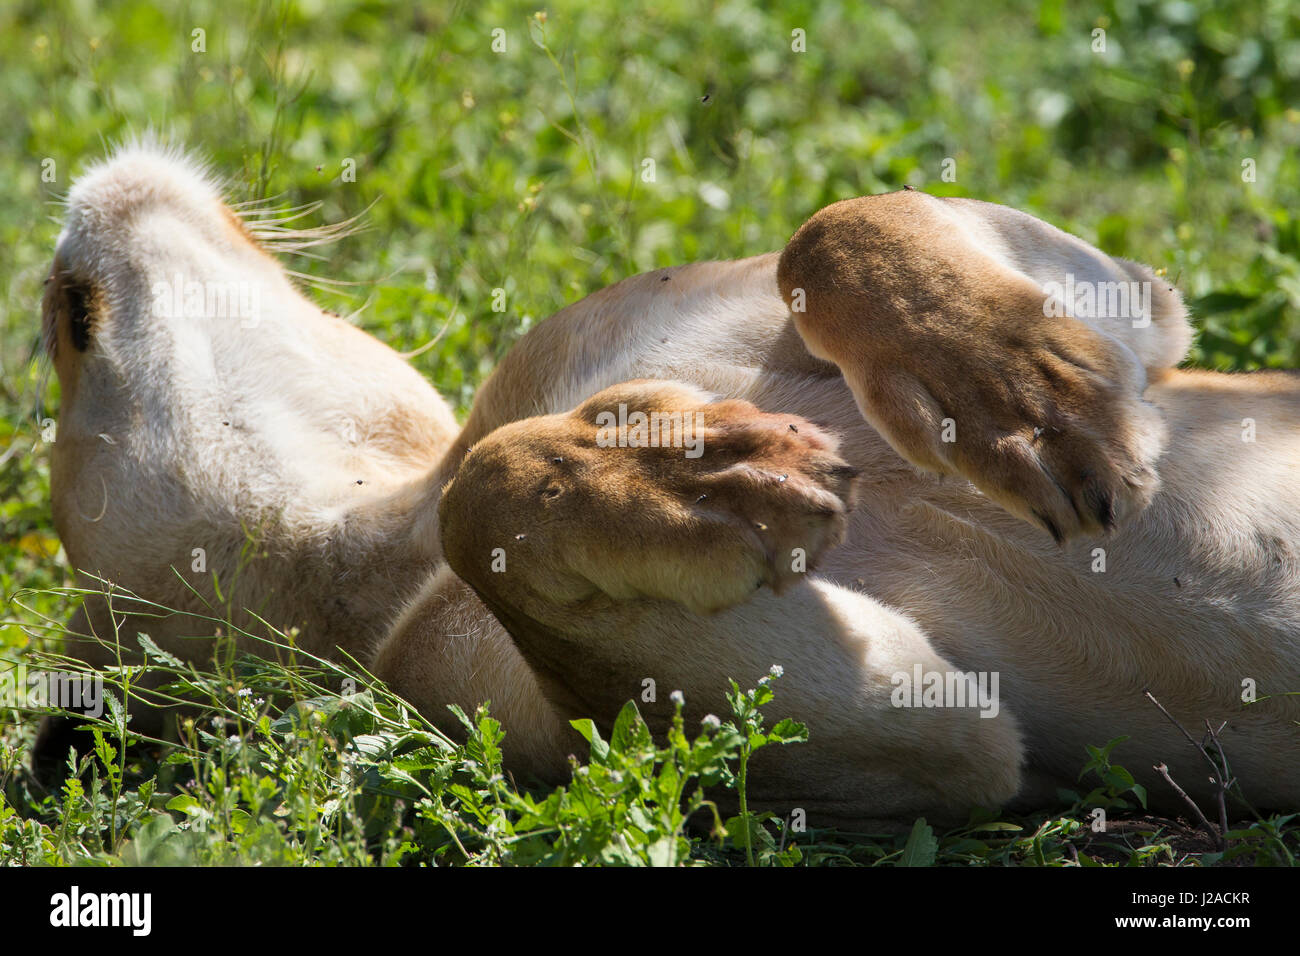 Lioness lying on back, head leaning back, upper body shown, paws curled in air - Stock Image